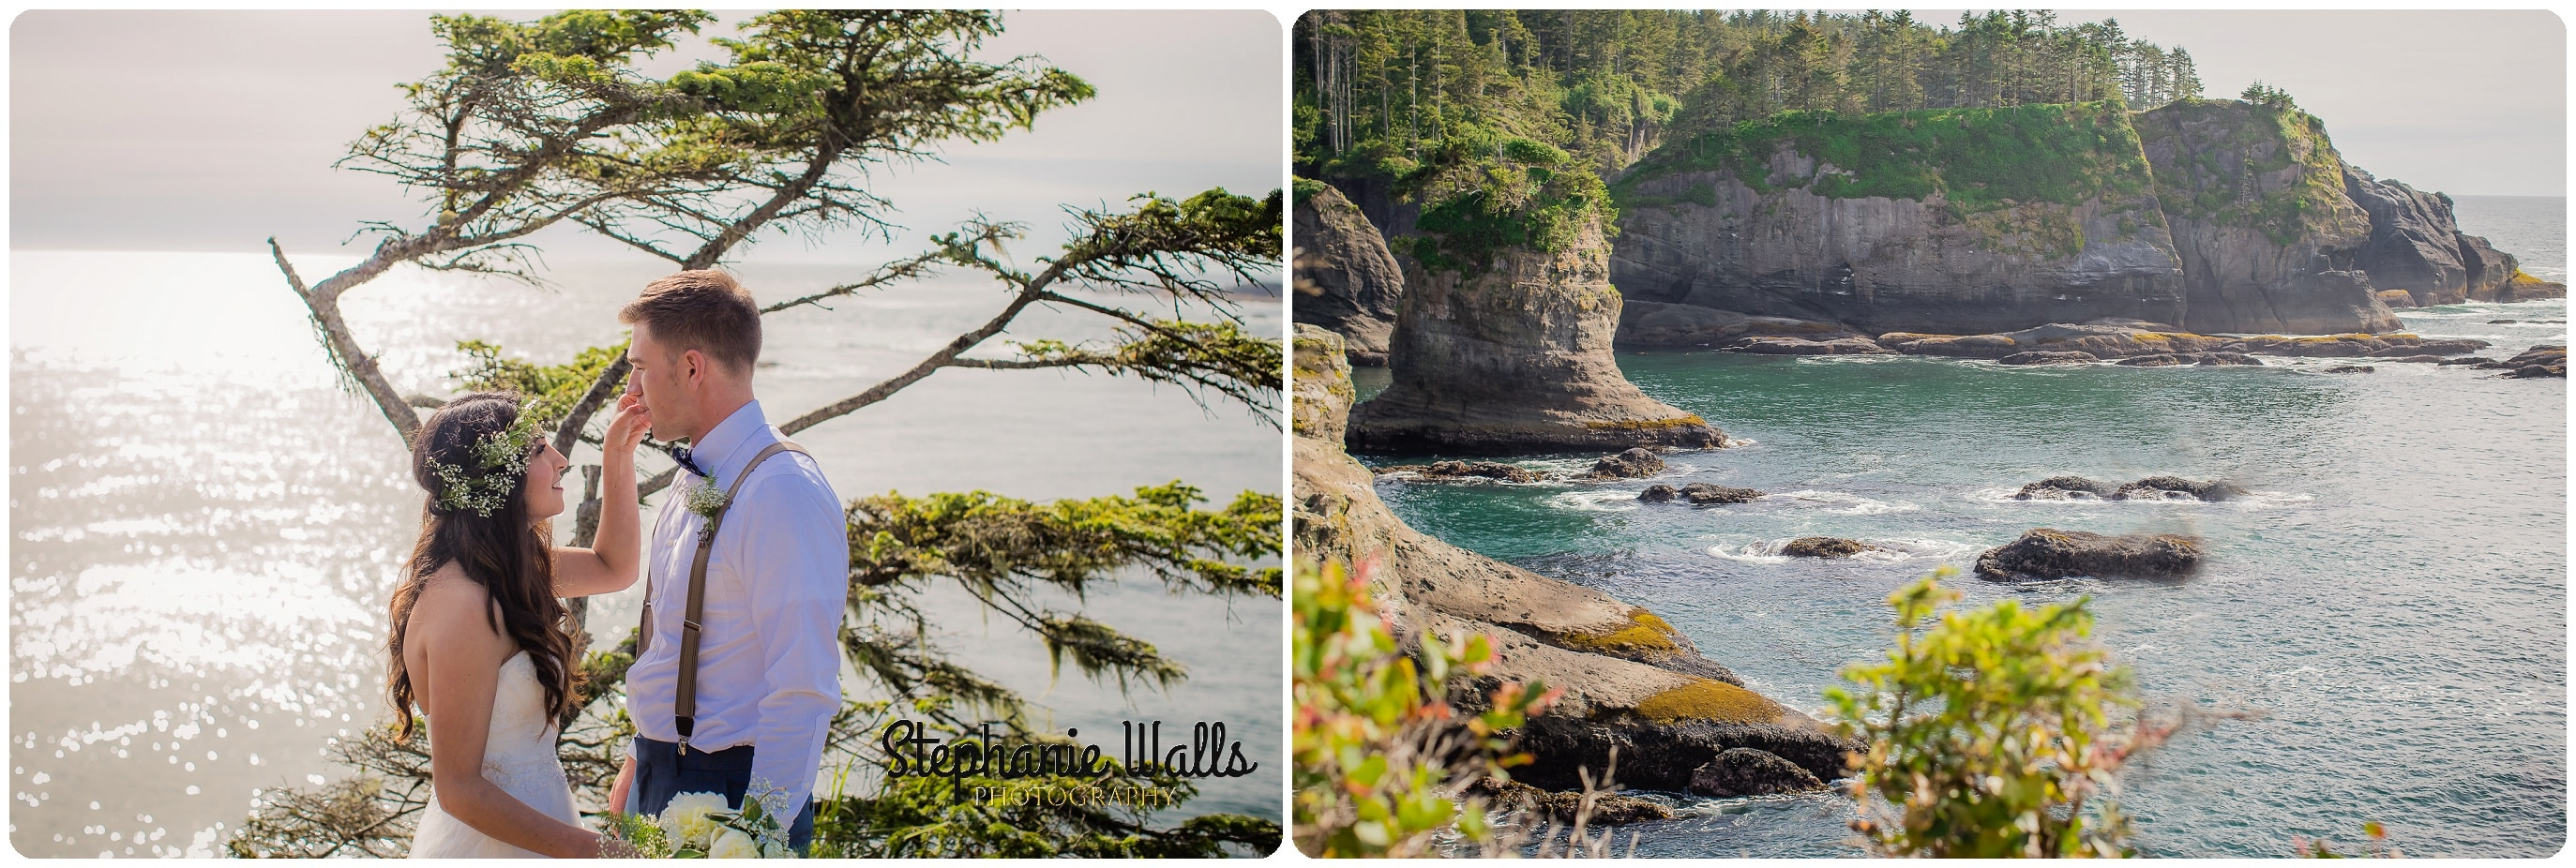 belfour 064 INTIMATE CLIFFSIDE ELOPEMENT | CAPE FLATTERY NEAH BAY | STEPHANIE WALLS PHOTOGRAPHY